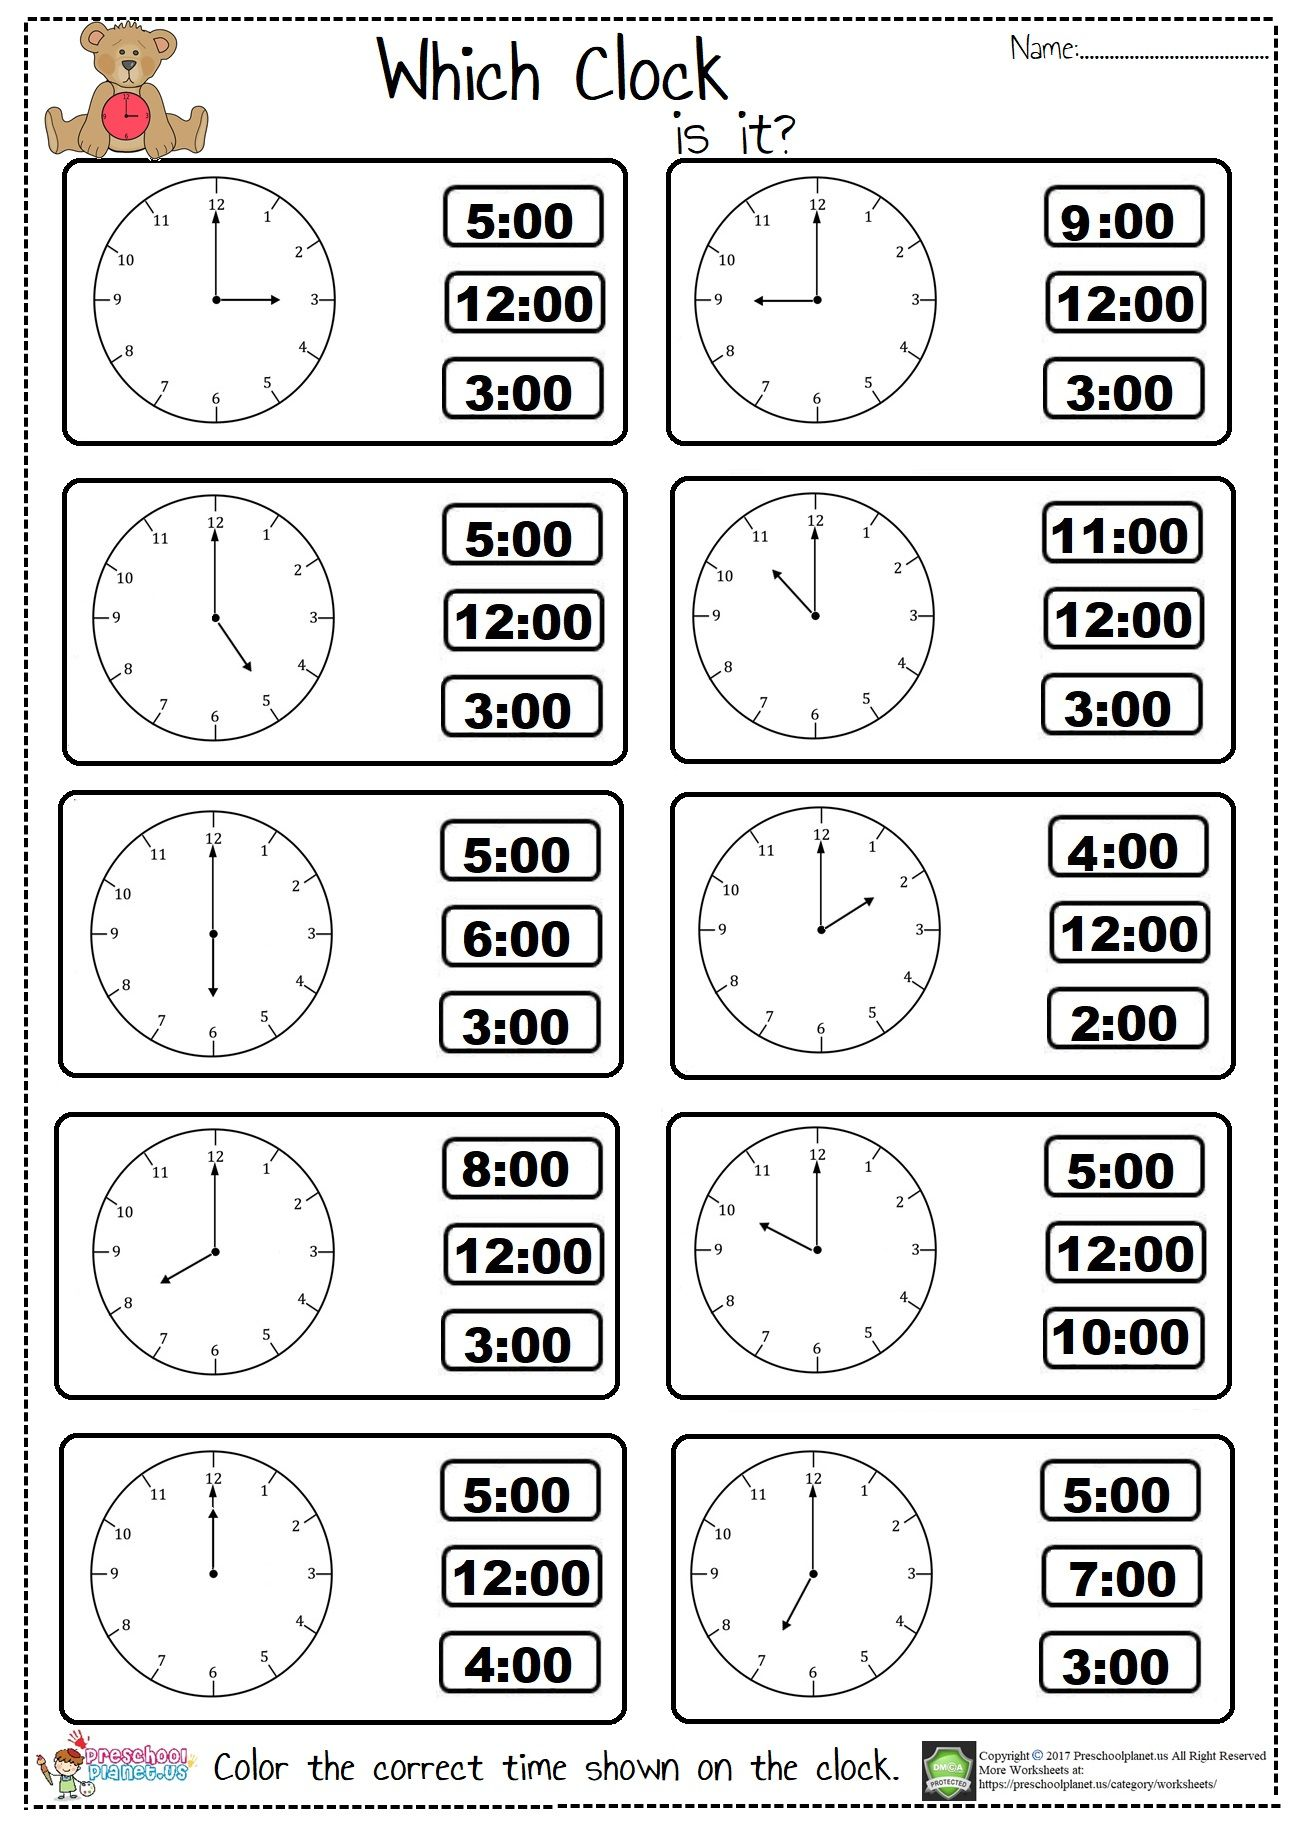 Hey Did You Check Out Our New Telling Time Worksheet We